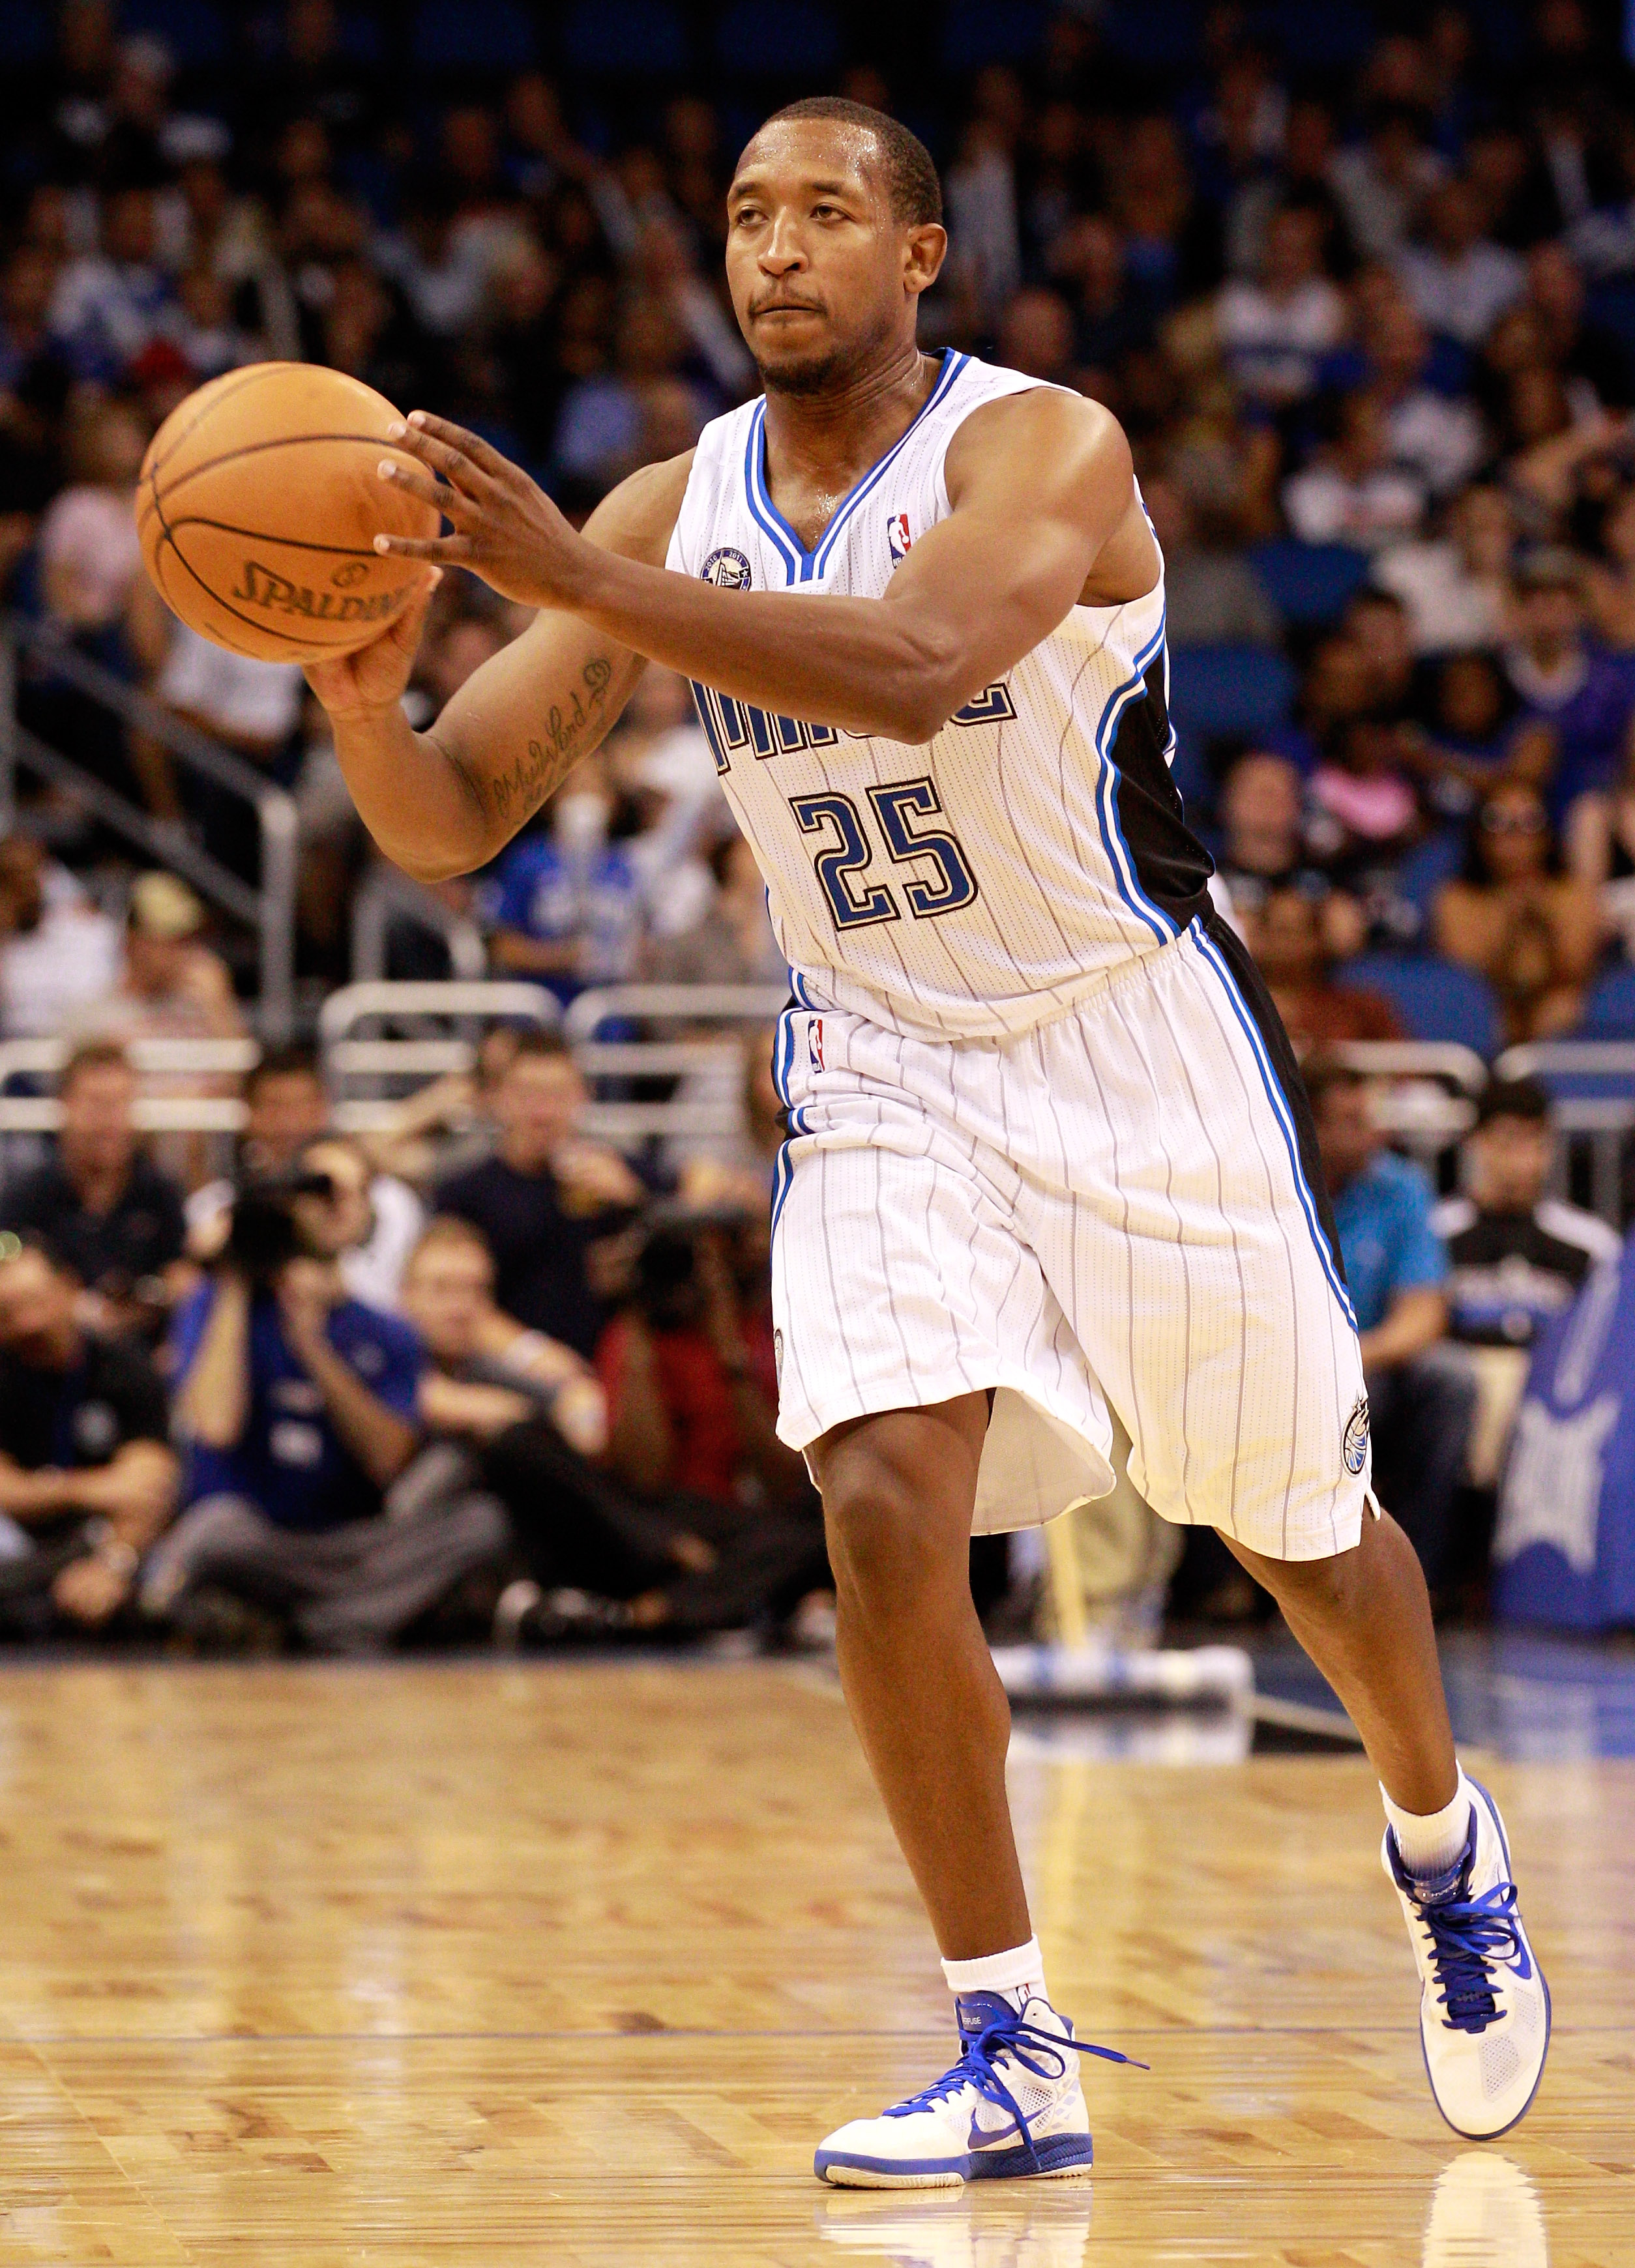 ORLANDO, FL - OCTOBER 10:  Chris Duhon #25 of the Orlando Magic passes the ball during the game against the New Orleans Hornets at Amway Arena on October 10, 2010 in Orlando, Florida. NOTE TO USER: User expressly acknowledges and agrees that, by downloadi